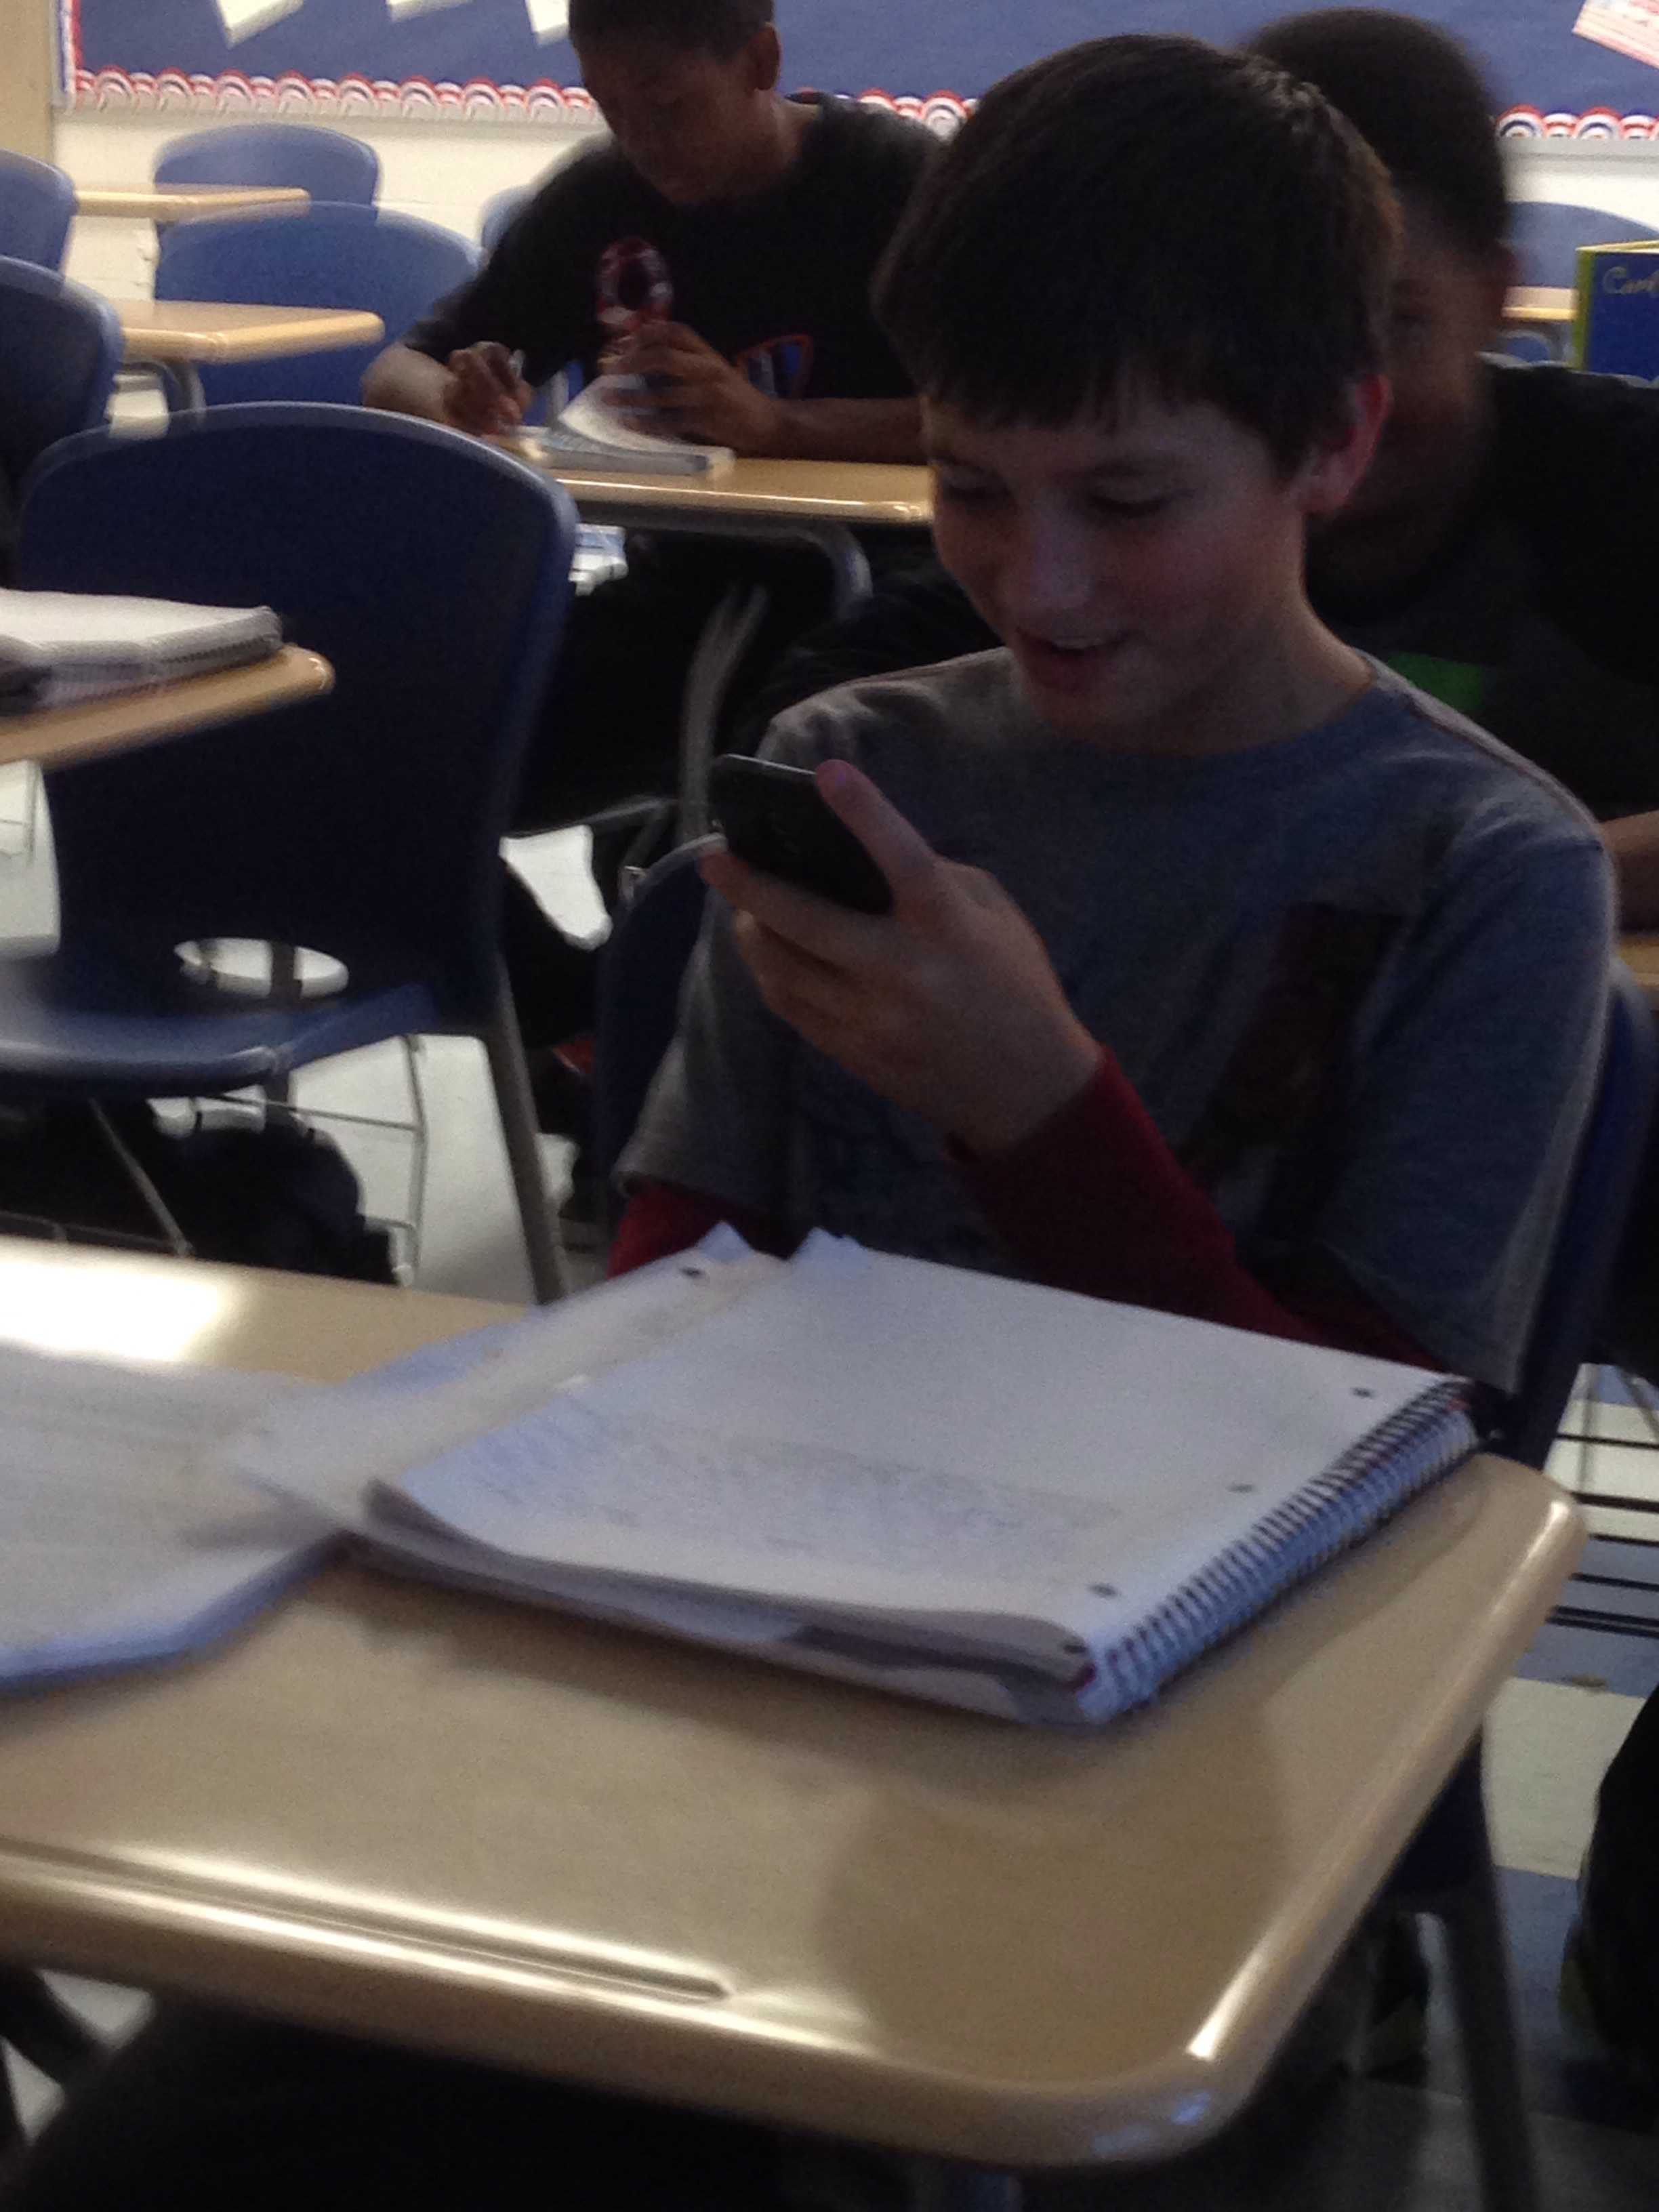 can cell phones be educational tools the declaration researching articles on genocide for an essay in english class freshman sean dressler uses his